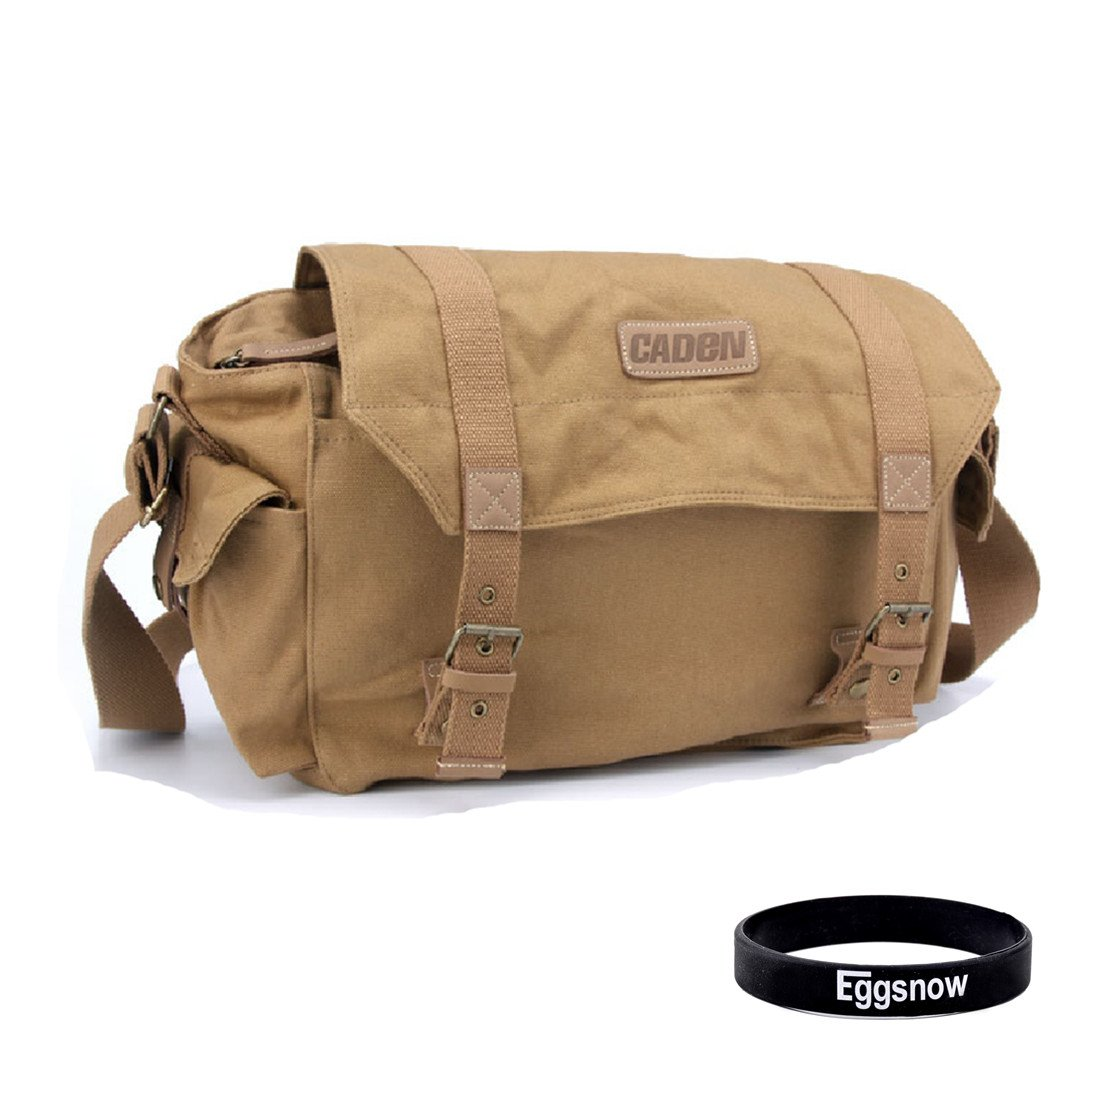 Eggsnow CADEN Camera Bag Anti theft Waterproof CanvasCustomer review and more news